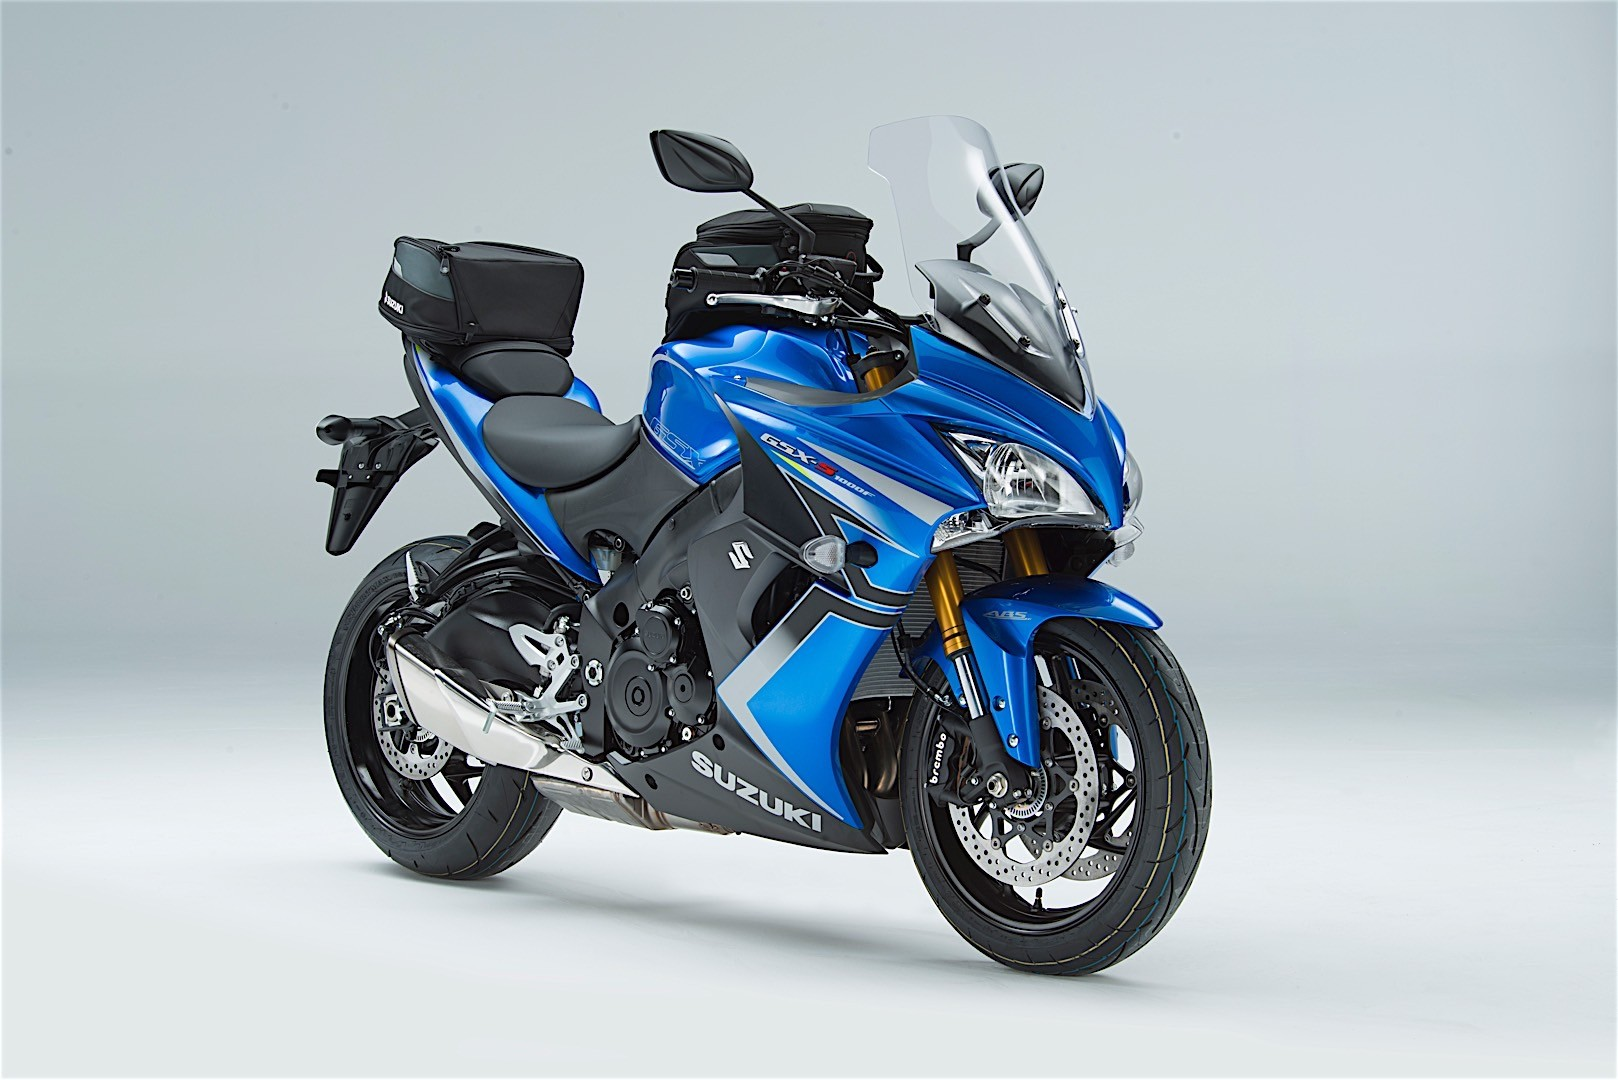 suzuki reveals special editions gsx s1000 and gsx s1000f. Black Bedroom Furniture Sets. Home Design Ideas